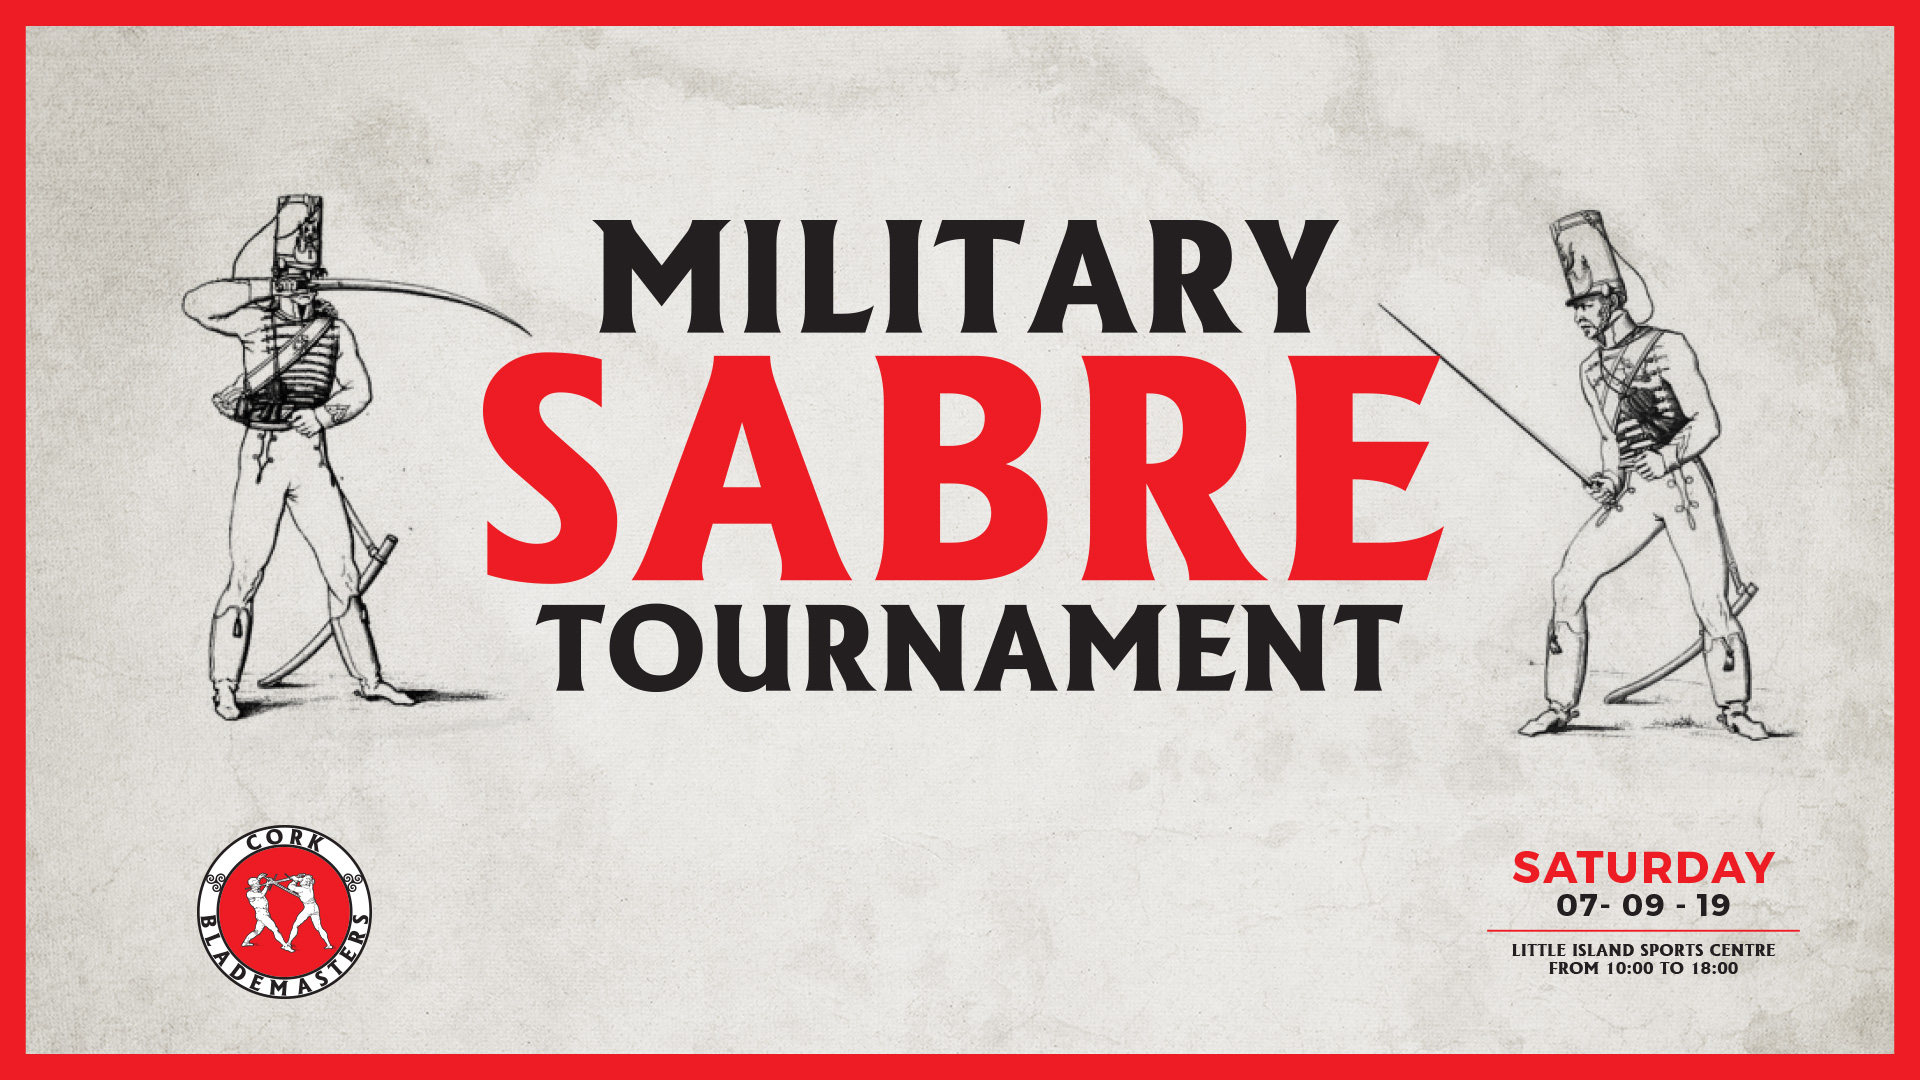 Military Sabre Tournament Tomorrow!